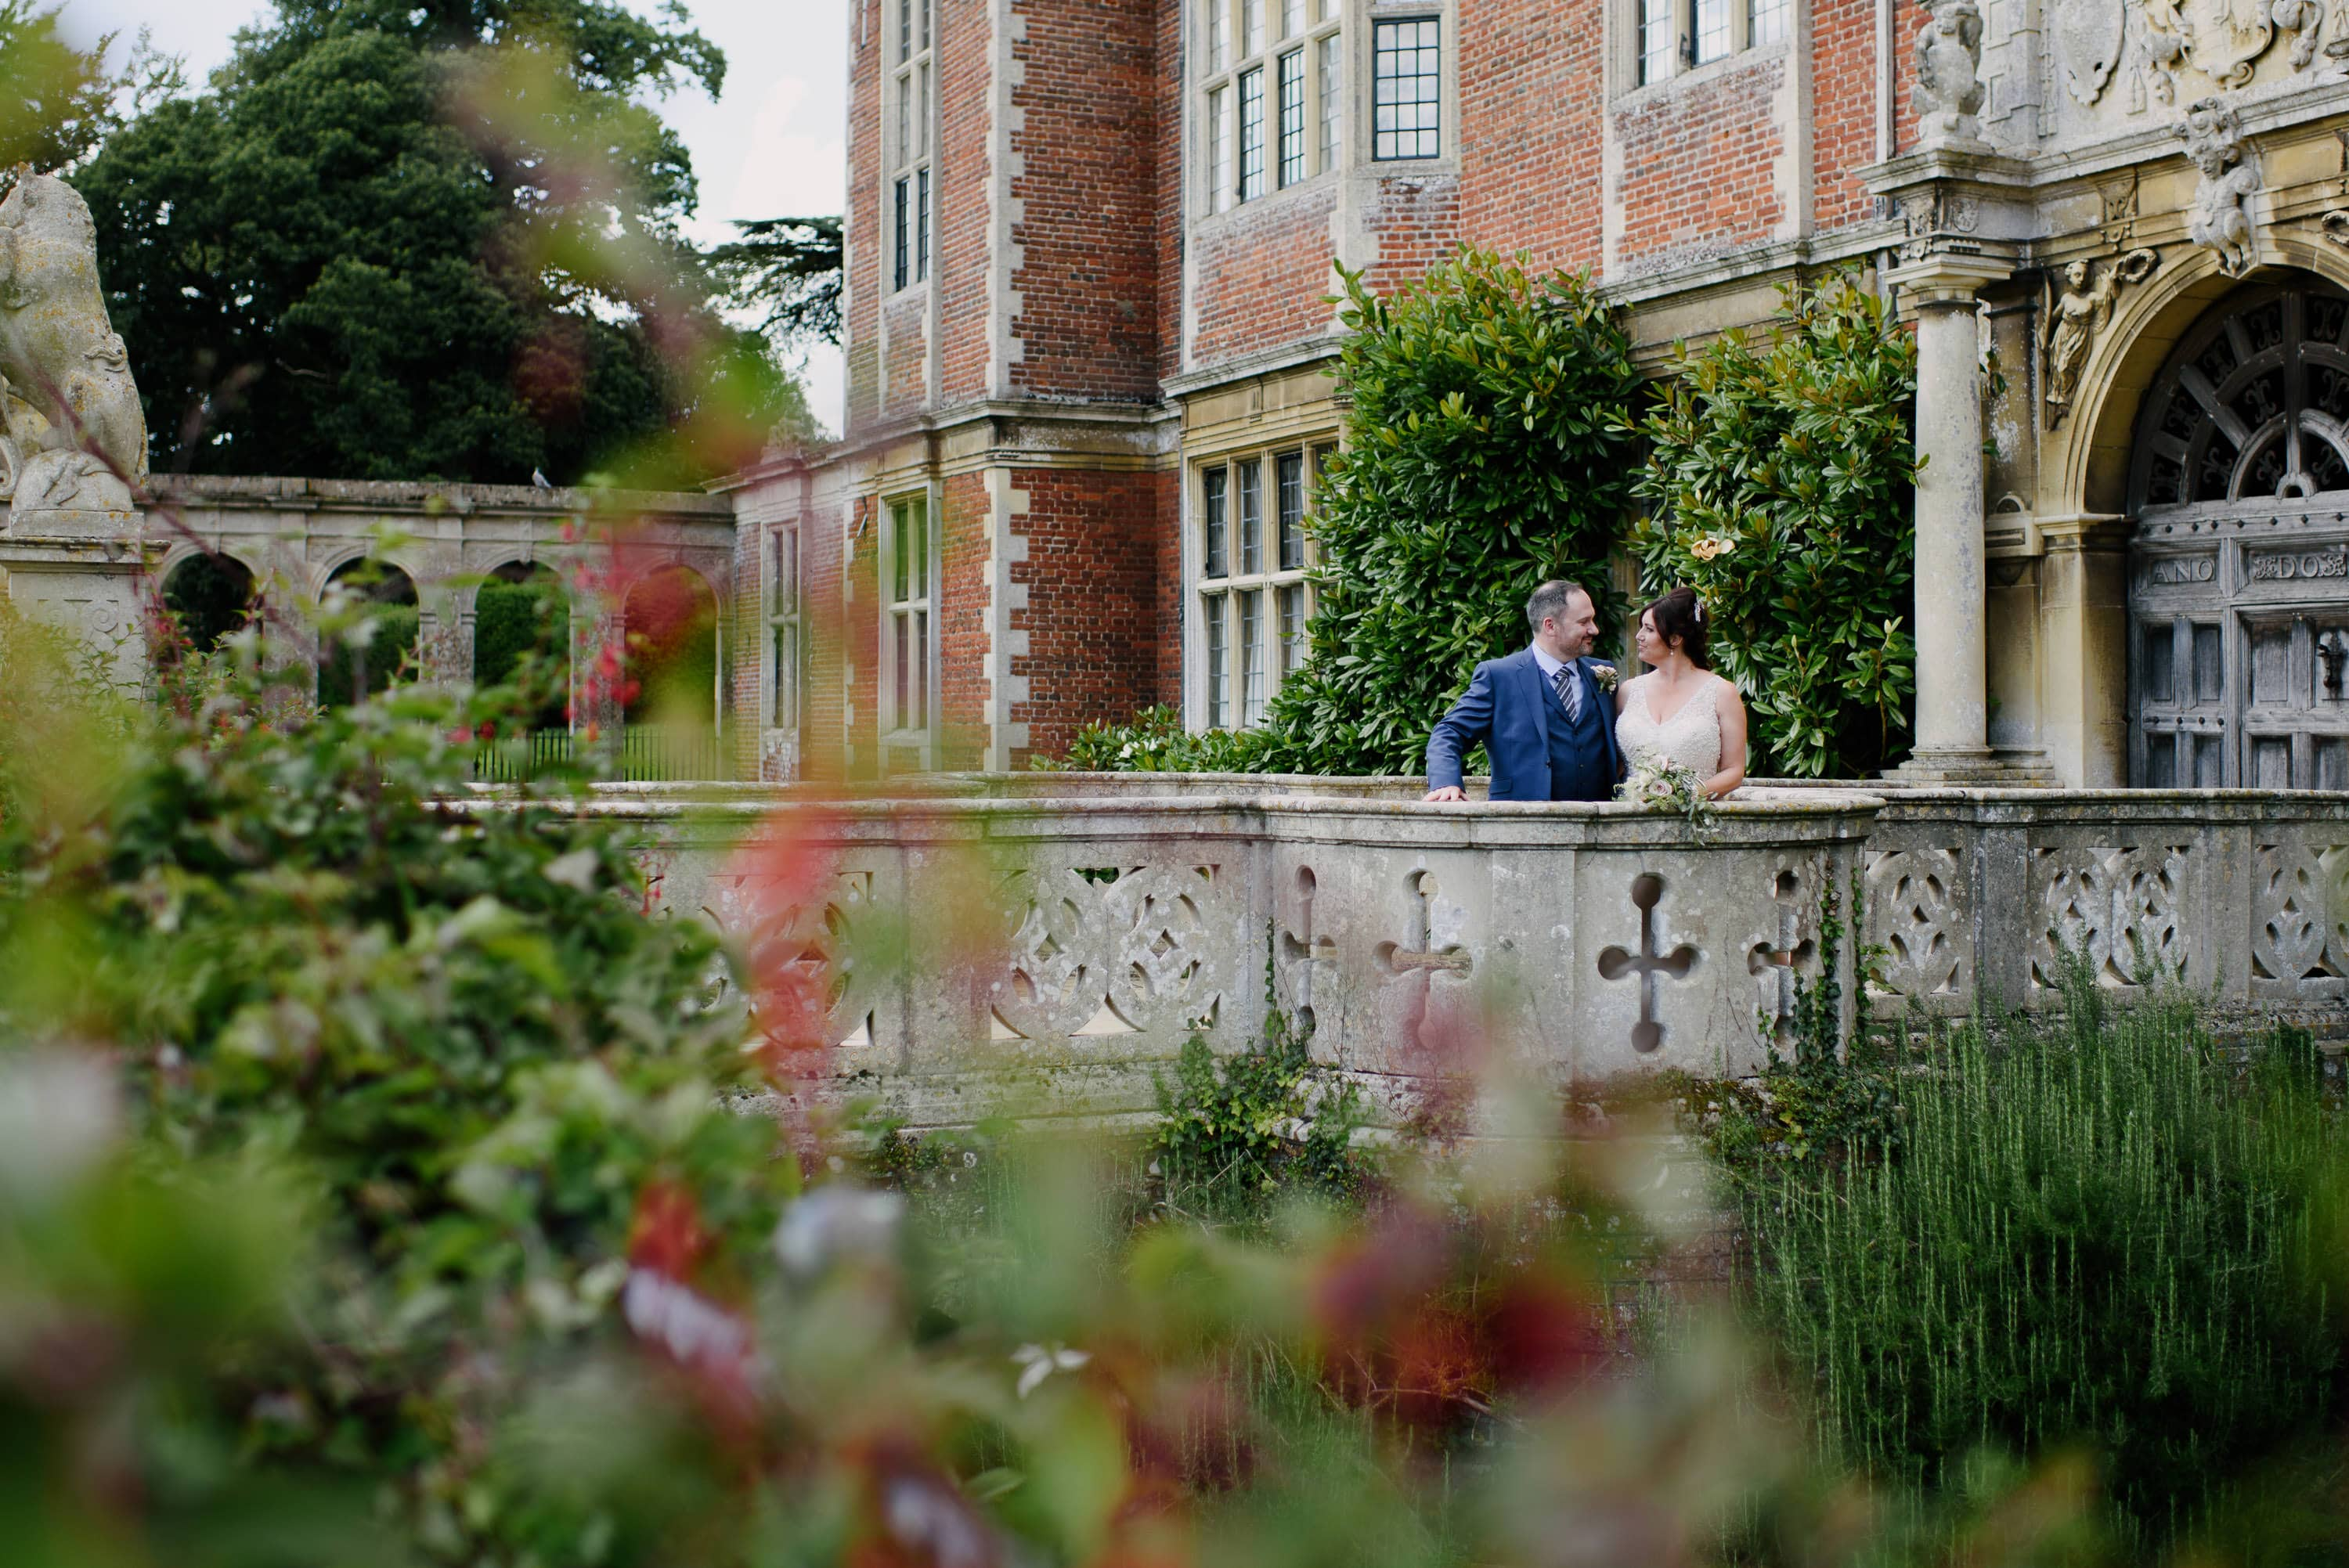 Suzy & Mike - Blickling Hall - Great British Proms - Slideshow 1